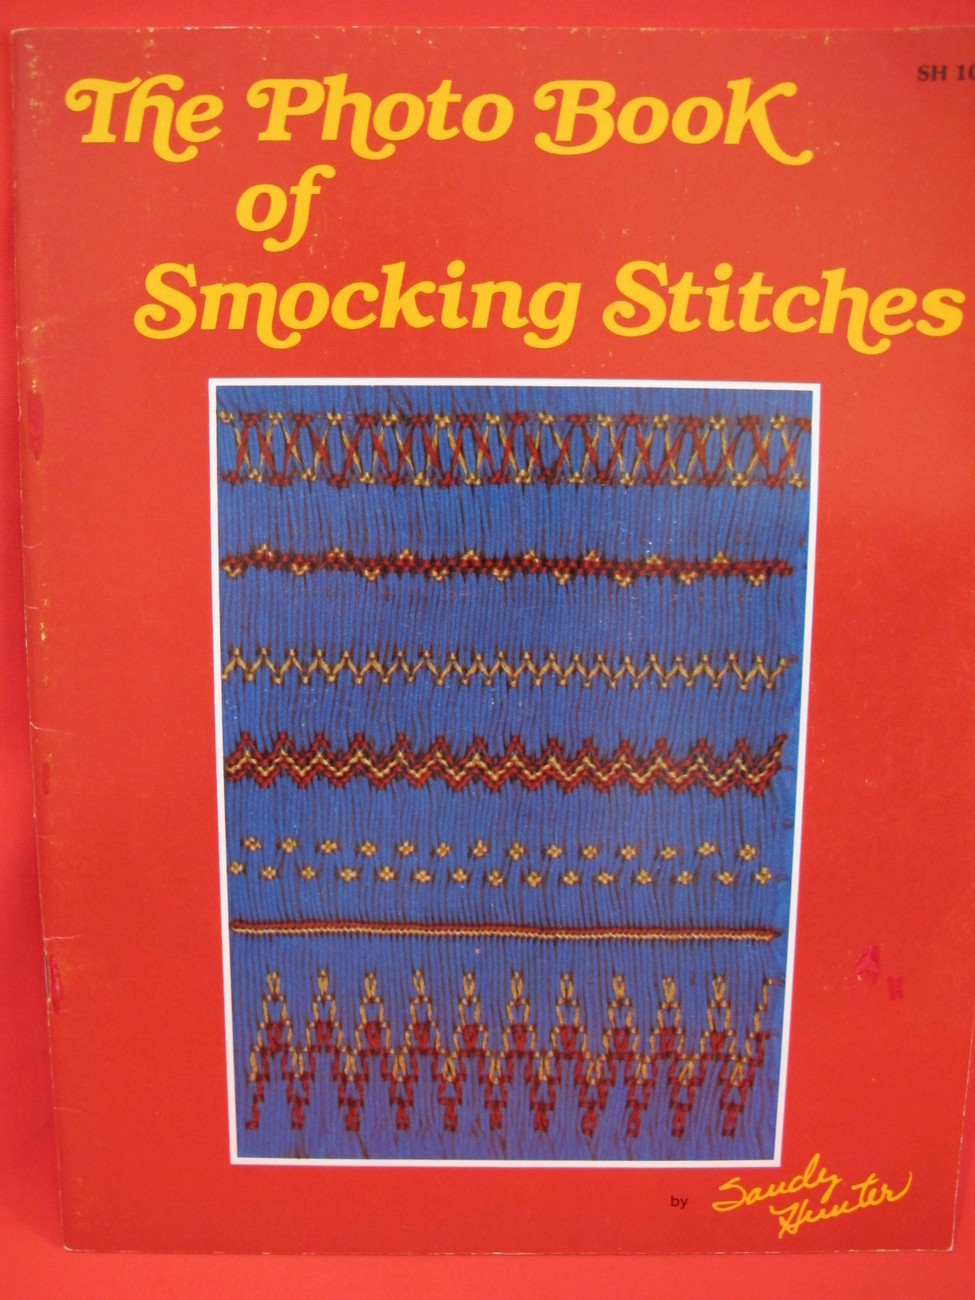 Vintage Photo Book of Smocking Stitches by Sandy Hunter